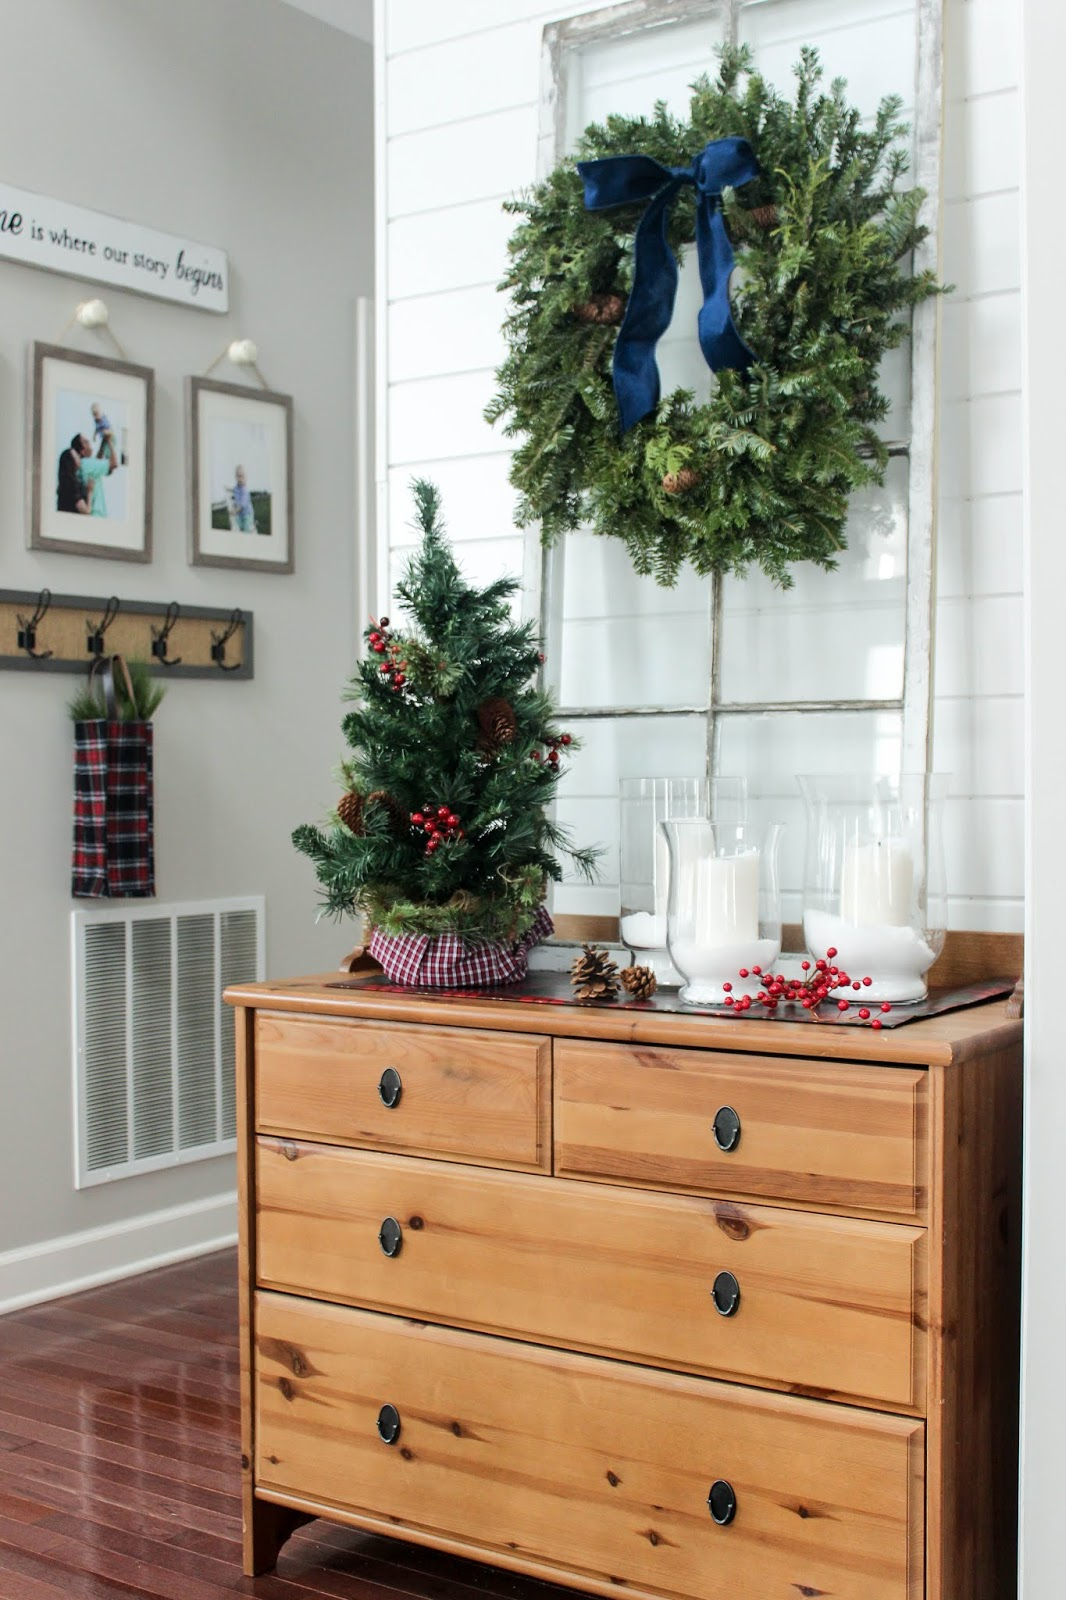 Christmas decor ideas for the entryway